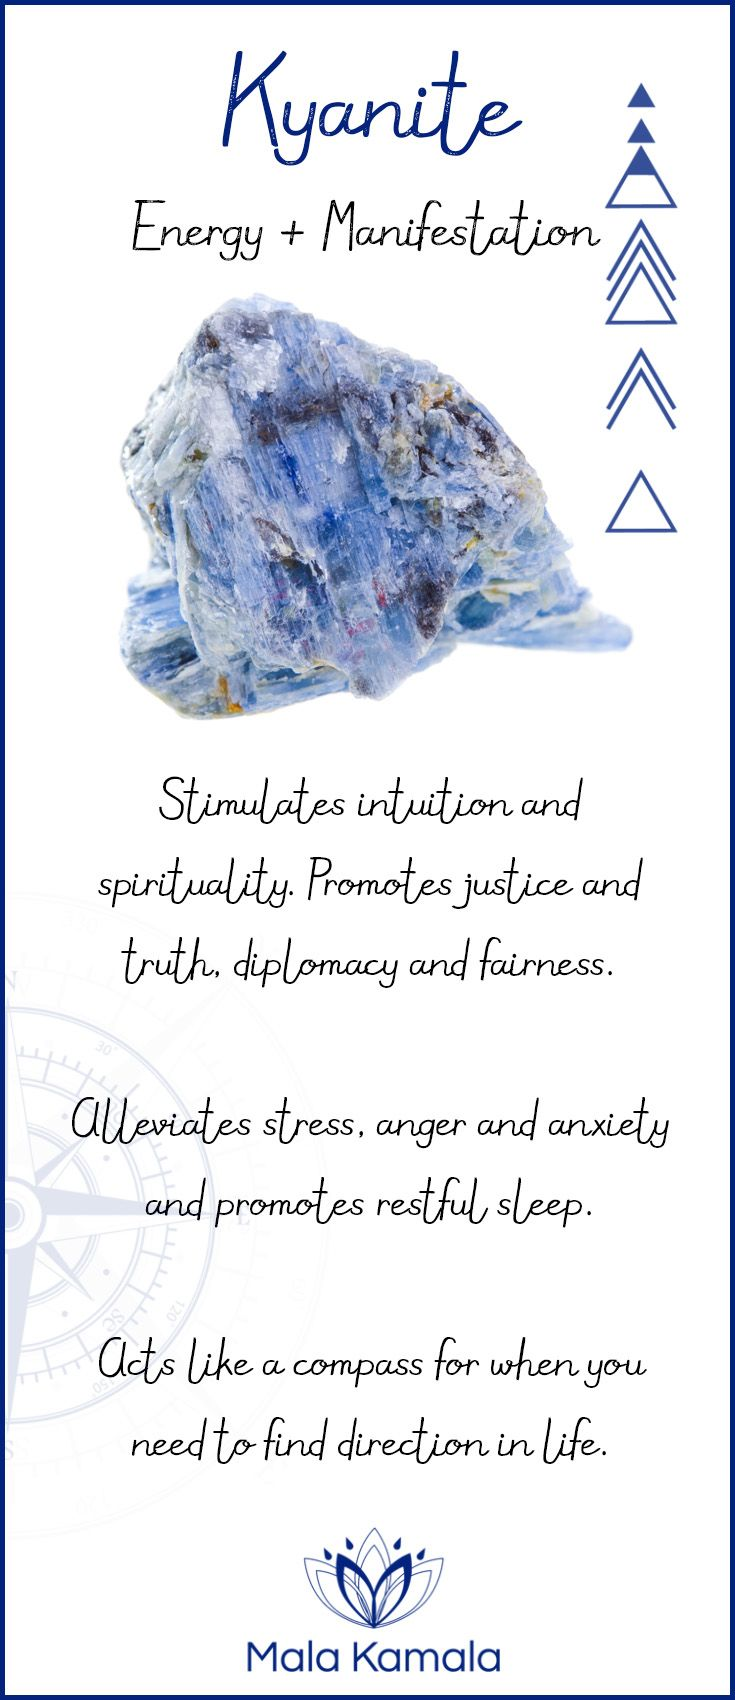 Pin To Save, Tap To Shop The Gem. What is the meaning and crystal and chakra healing properties of kyanite? A stone for energy and manifestation. Mala Kamala Mala Beads - Malas, Mala Beads, Mala Bracelets, Tiny Intentions, Baby Necklaces, Yoga Jewelry, Meditation Jewelry, Baltic Amber Necklaces, Gemstone Jewelry, Chakra Healing and Crystal Healing Jewelry, Mala Necklaces, Prayer Beads, Sacred Jewelry, Bohemian Boho Jewelry, Childrens and Babies Jewelry.